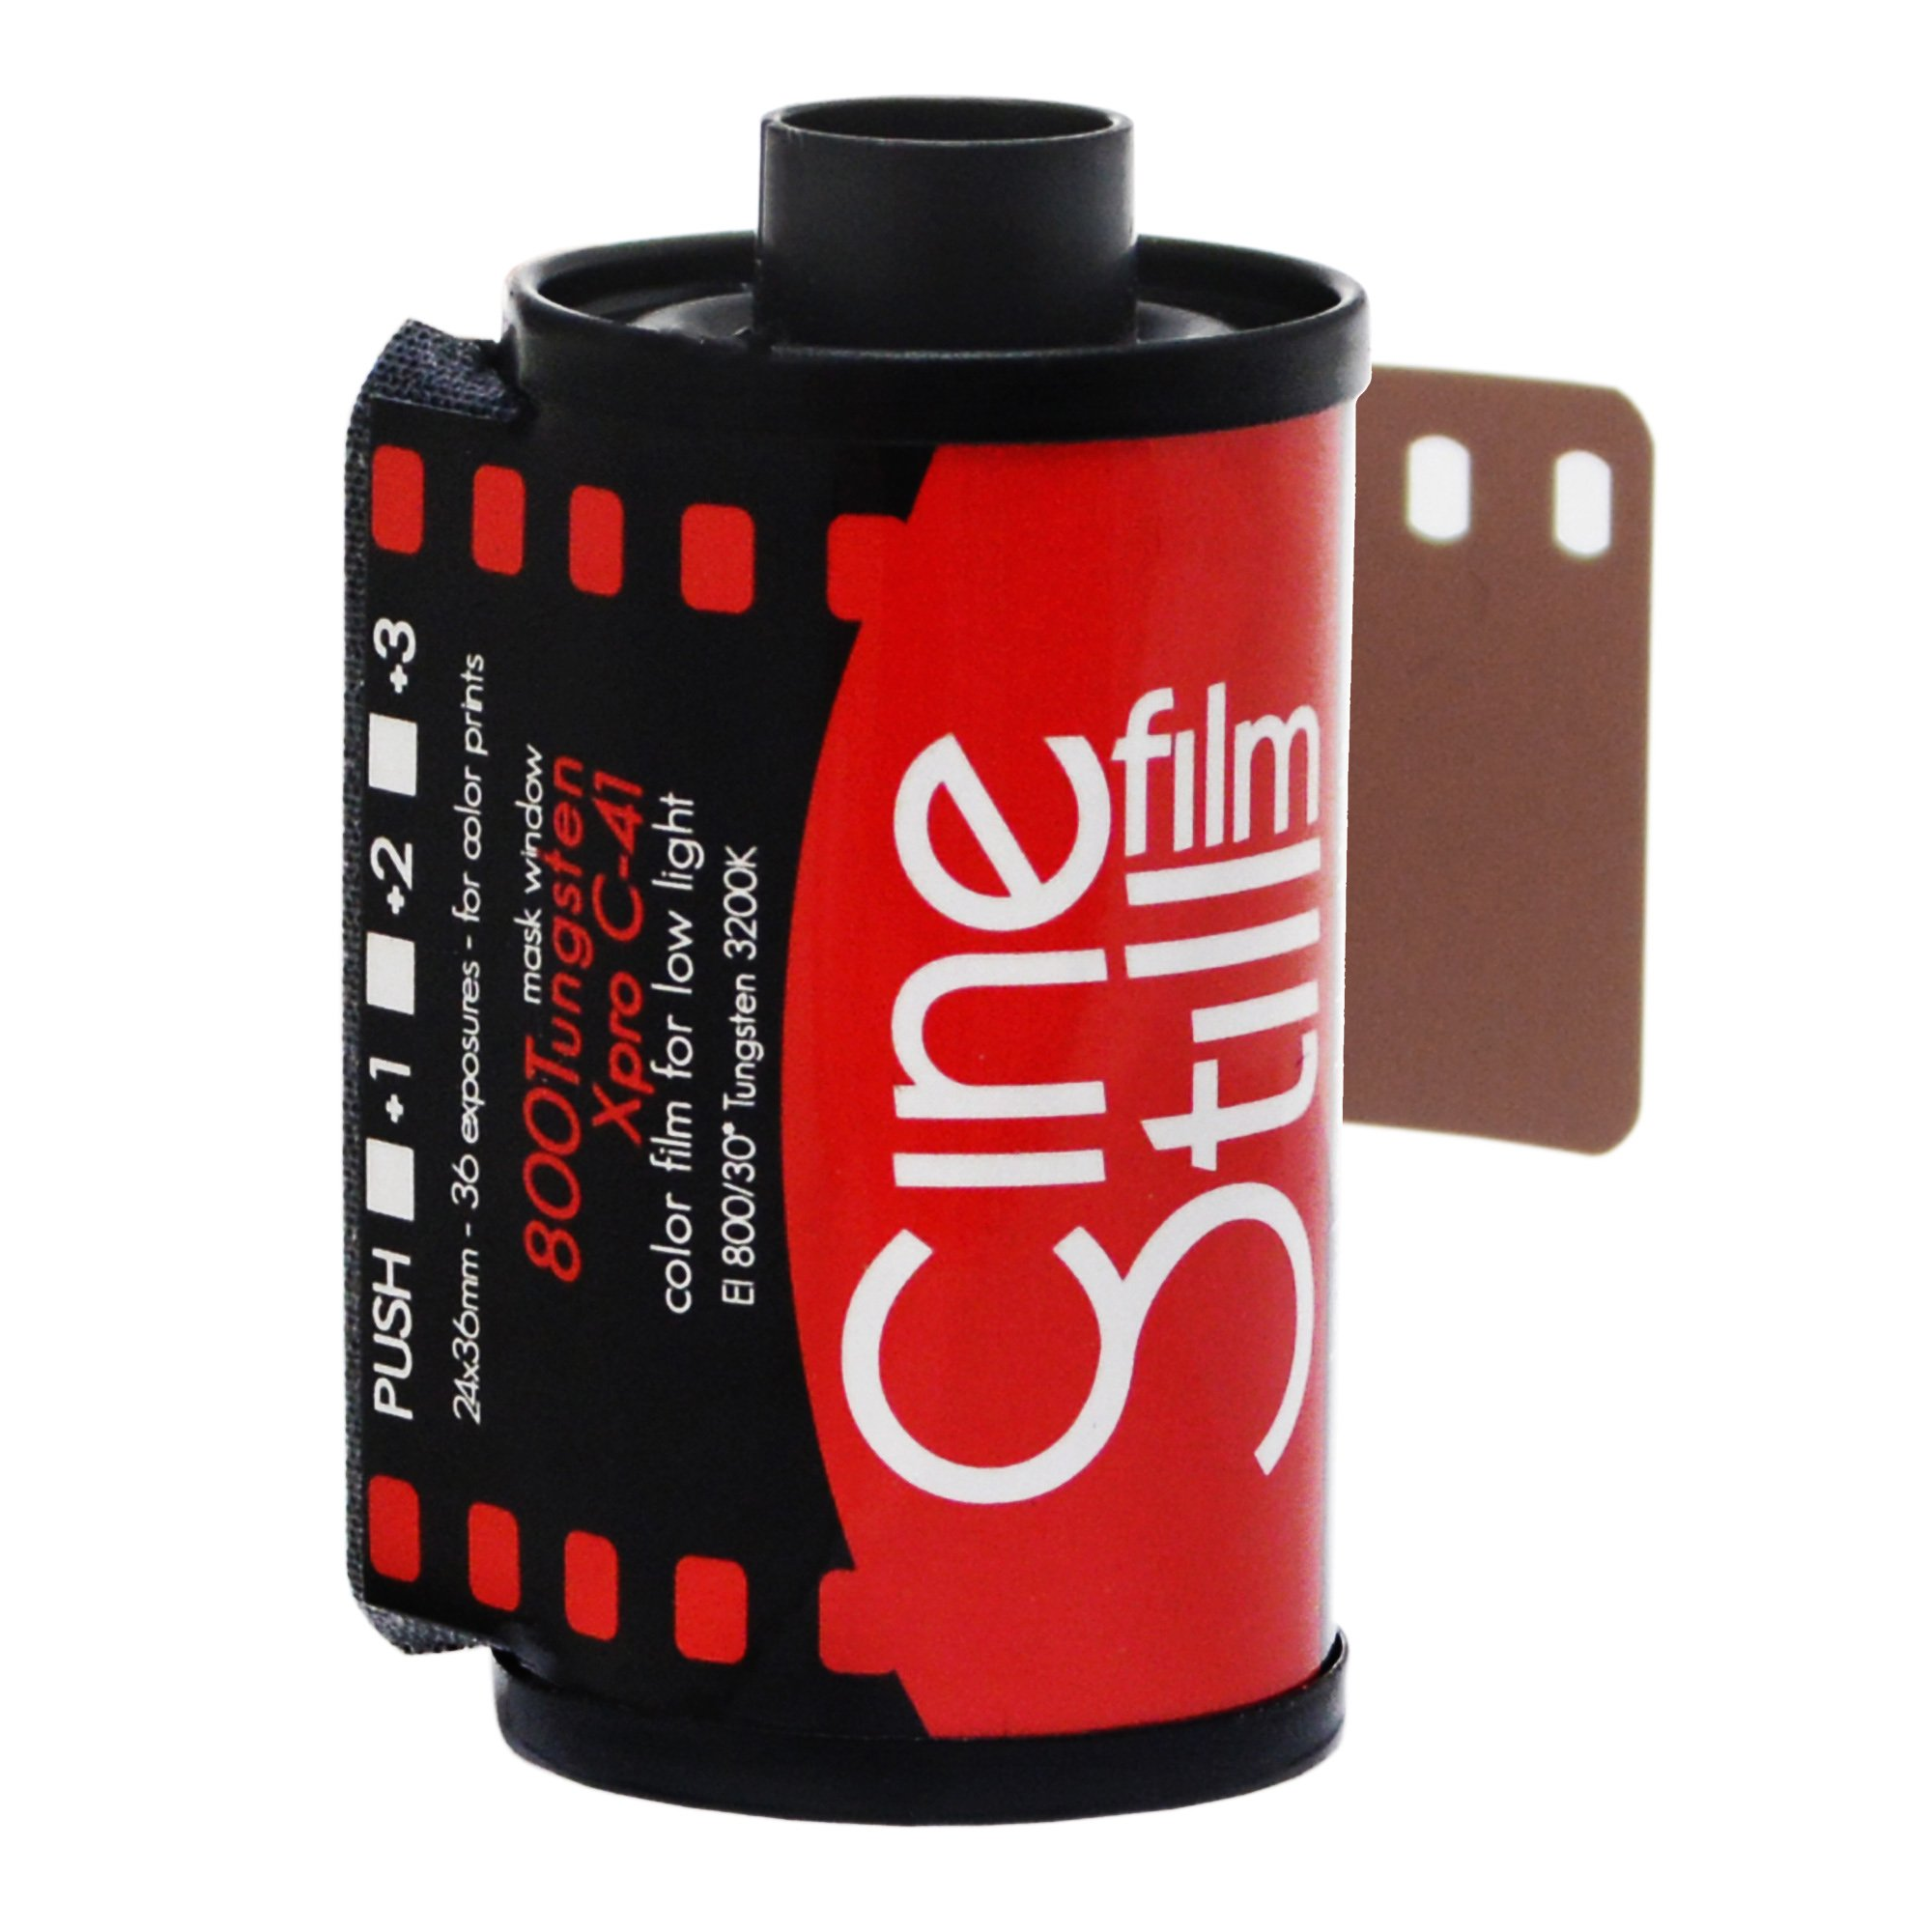 CineStill Film 800135 800 Tungsten High Speed (ISO 800) Color Film, 36 Exposures 135 DX Coded by CINE